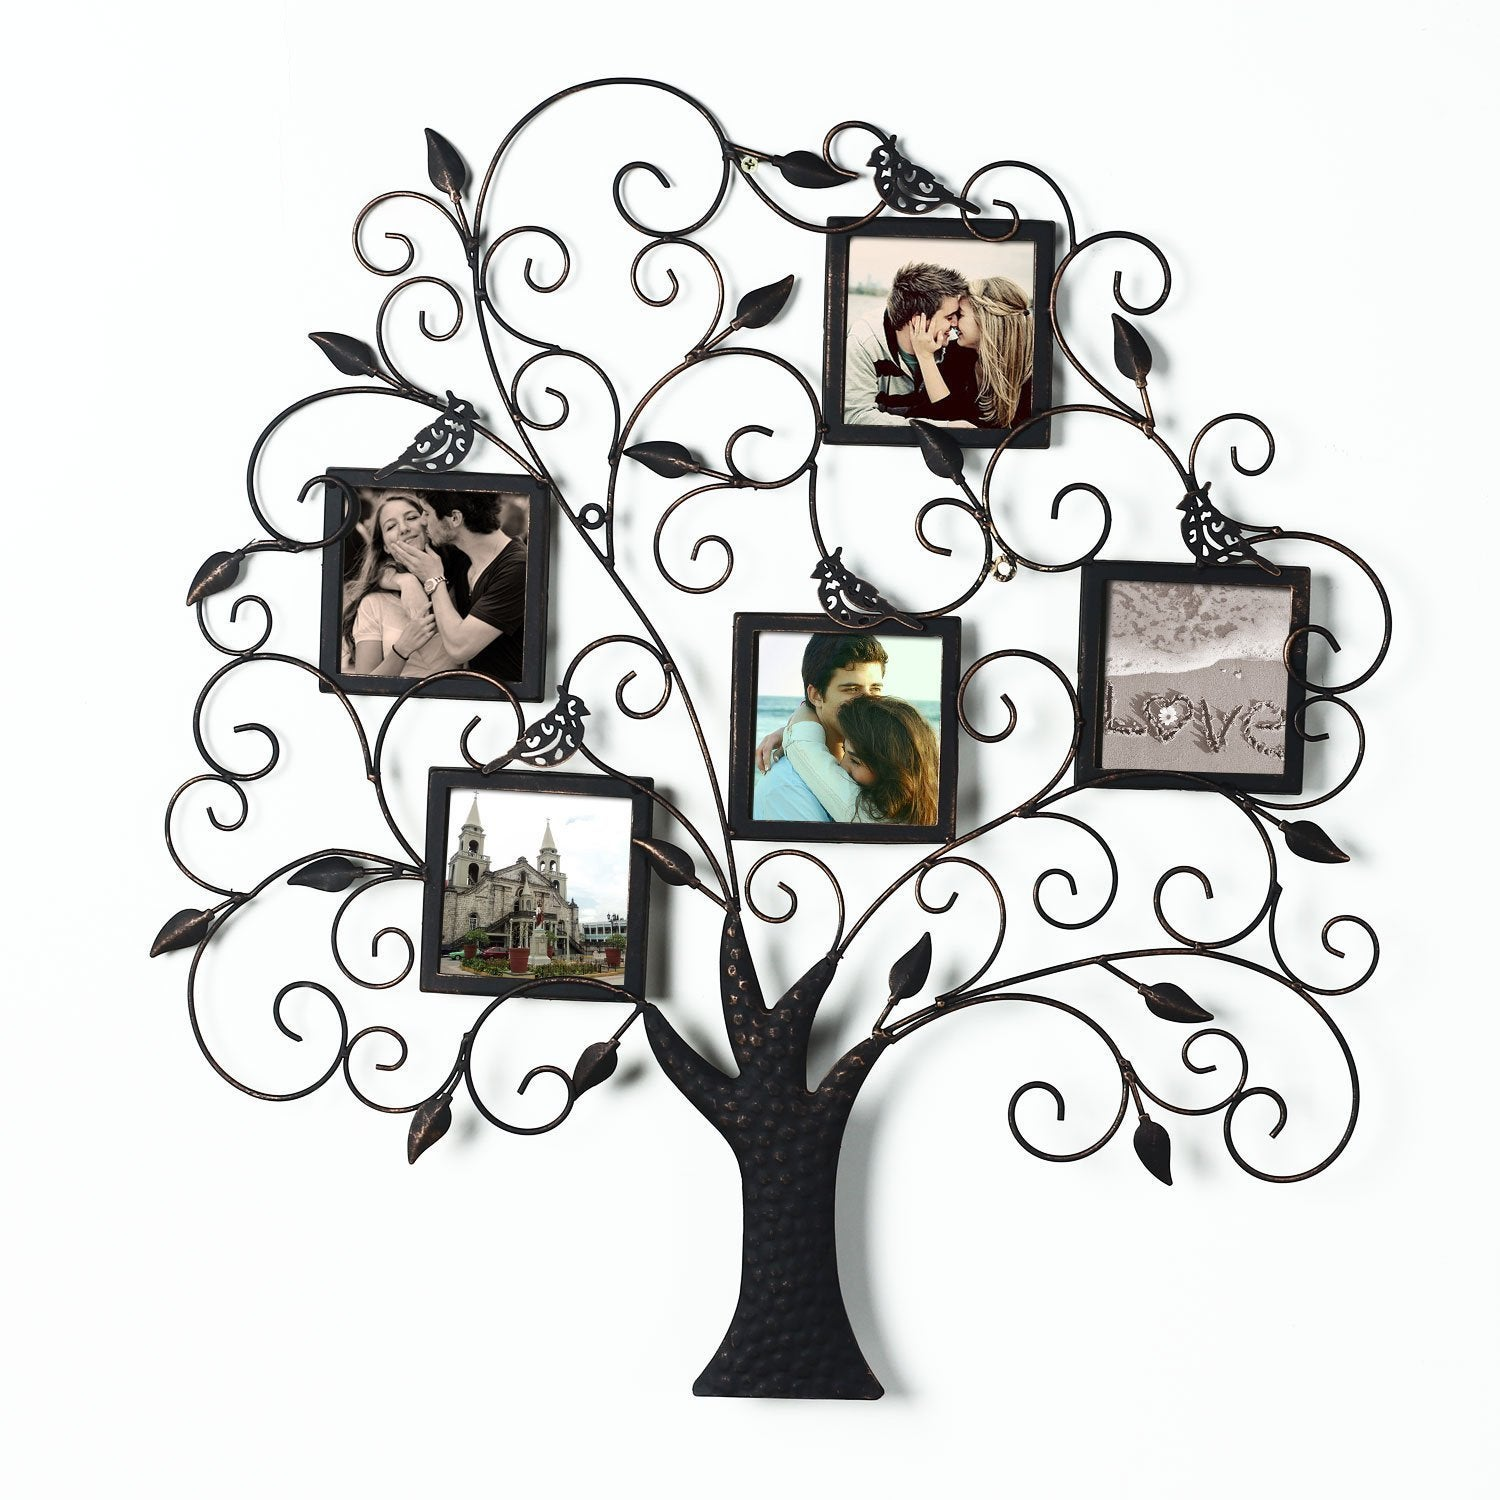 Adeco Brown and Black Iron Metal Decorative Tree-style Co...